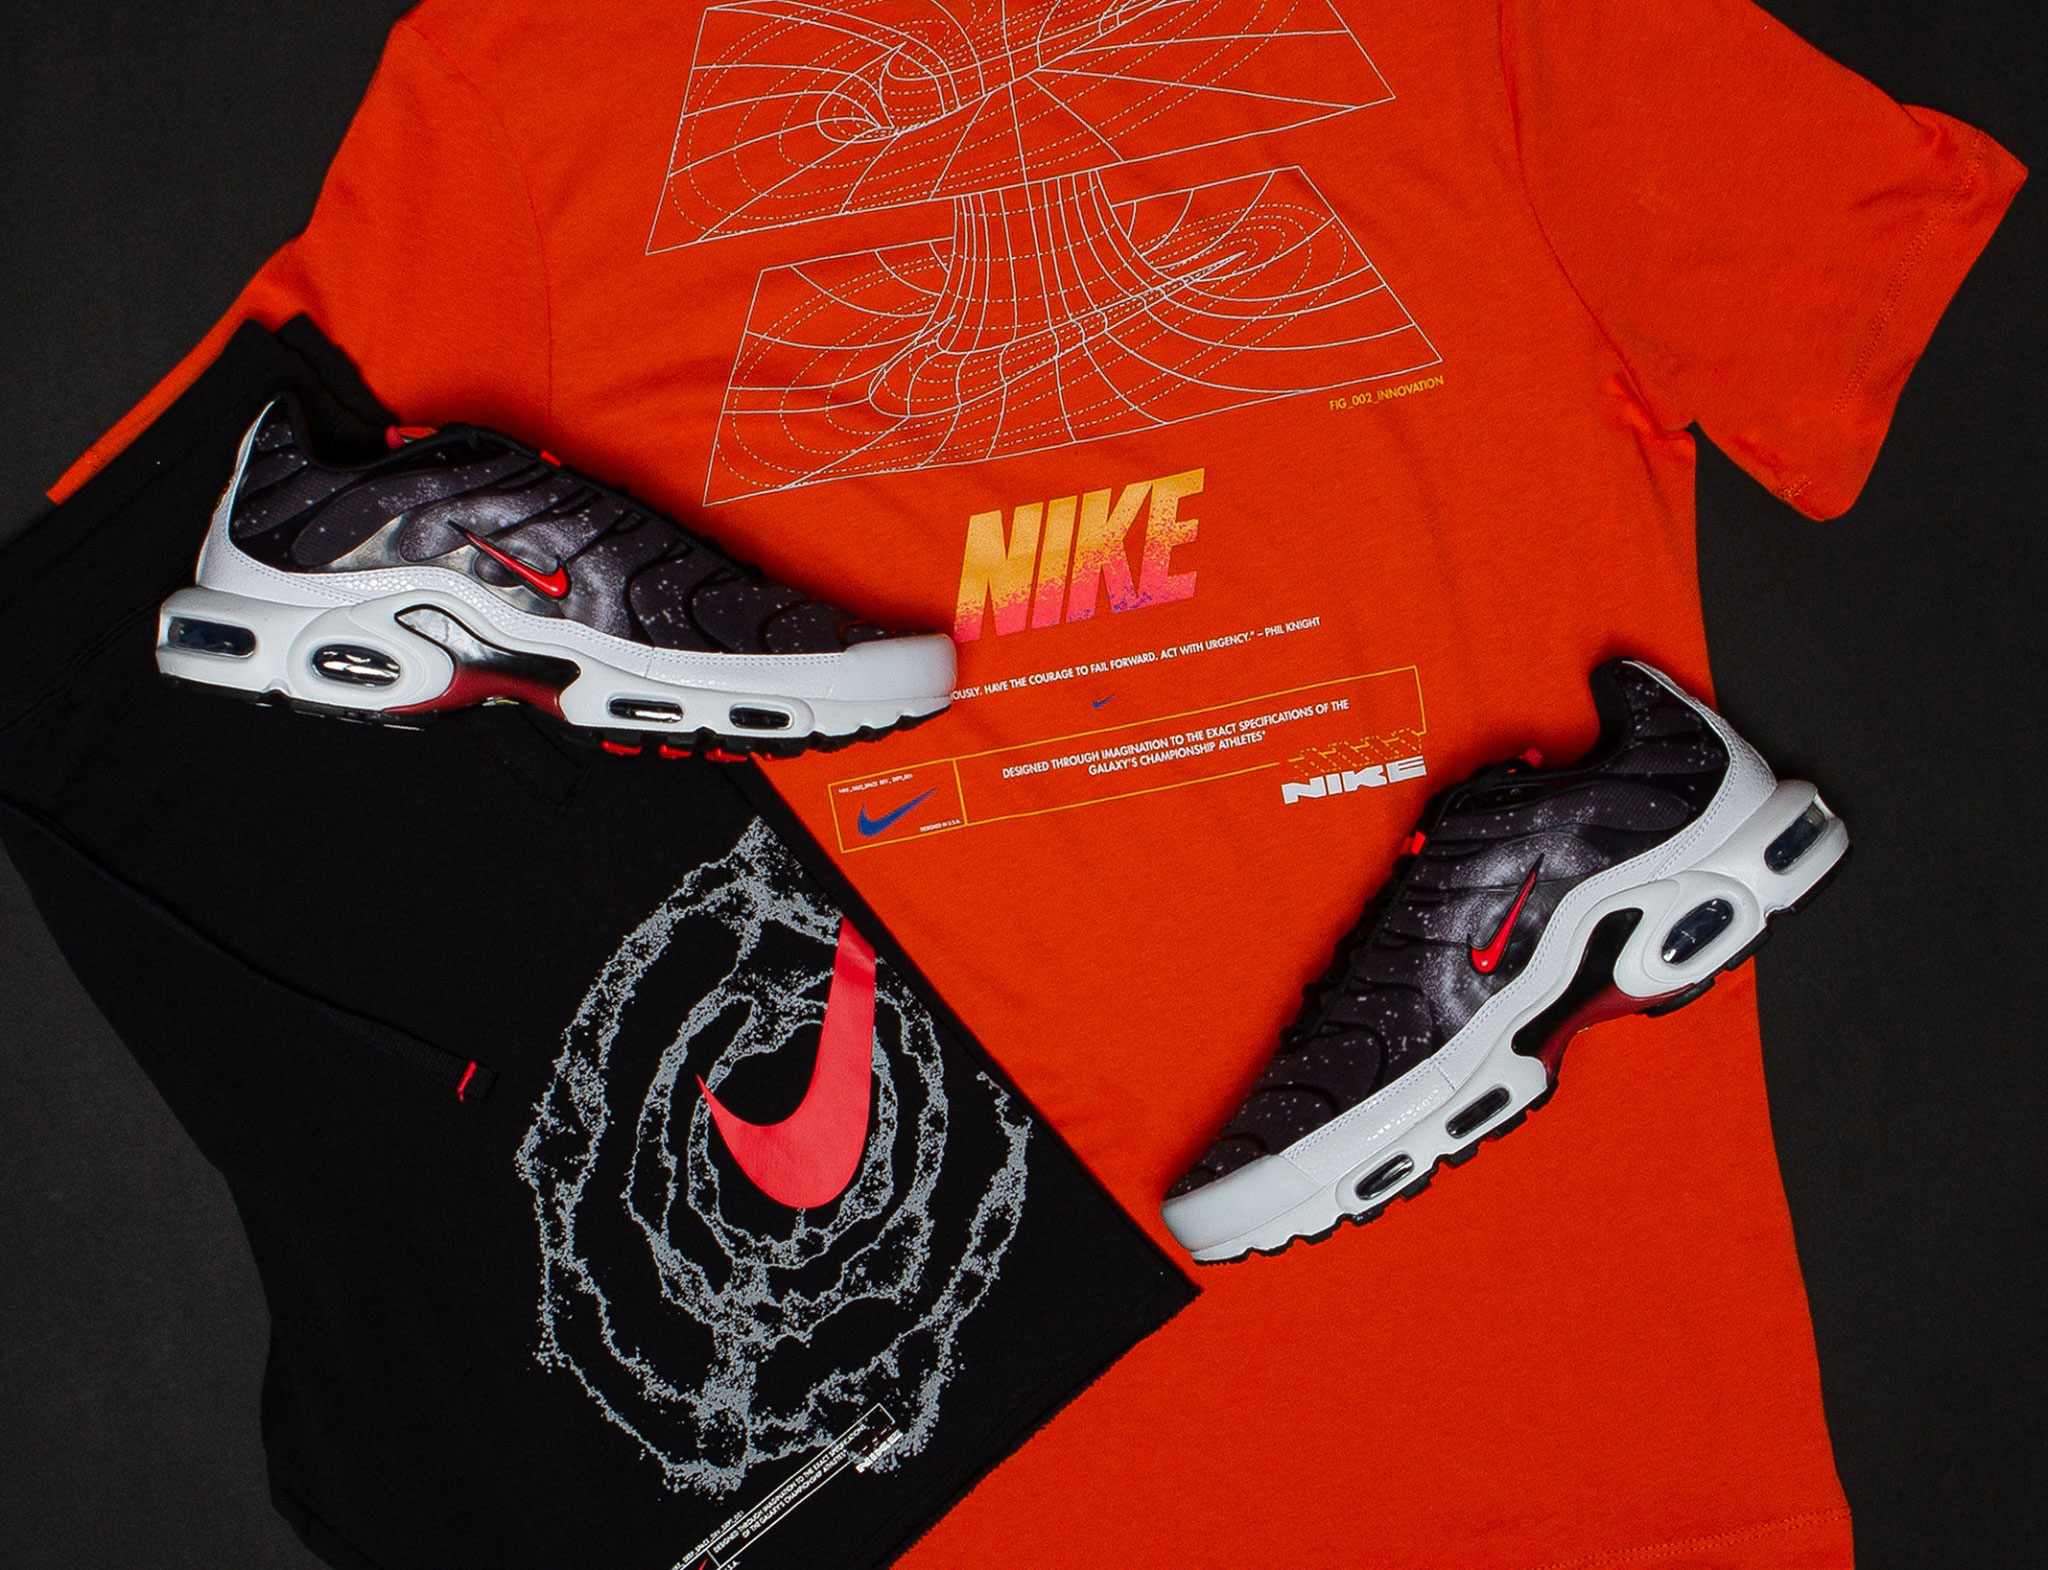 nike-air-max-supernova-space-to-dream-clothing